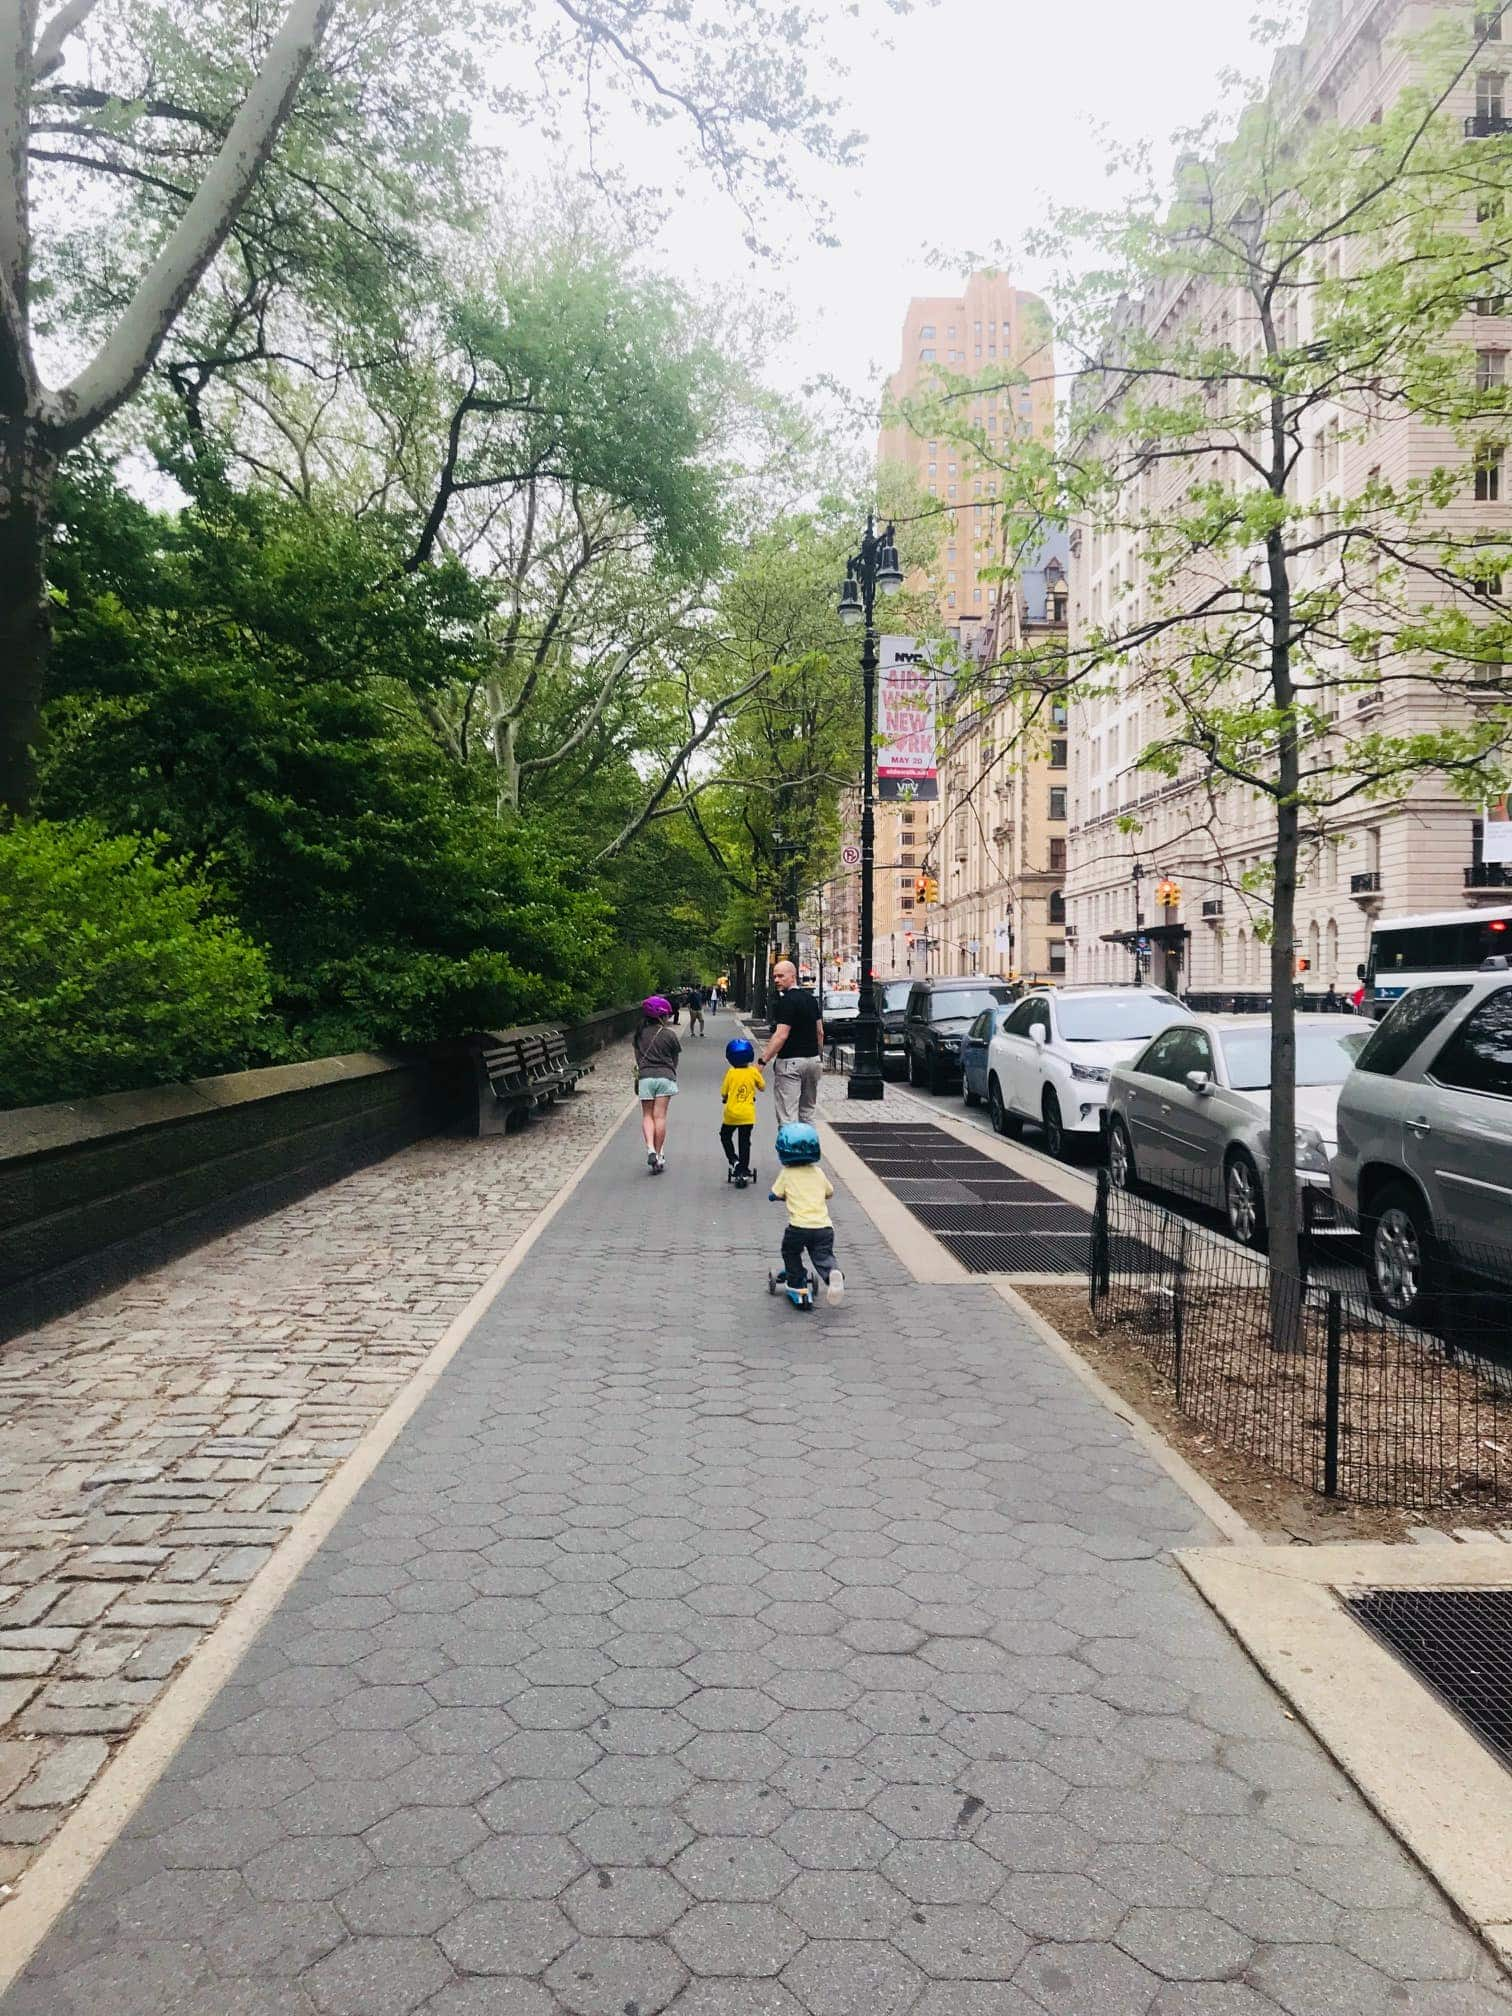 Kids scootering down a sidewalk in the city